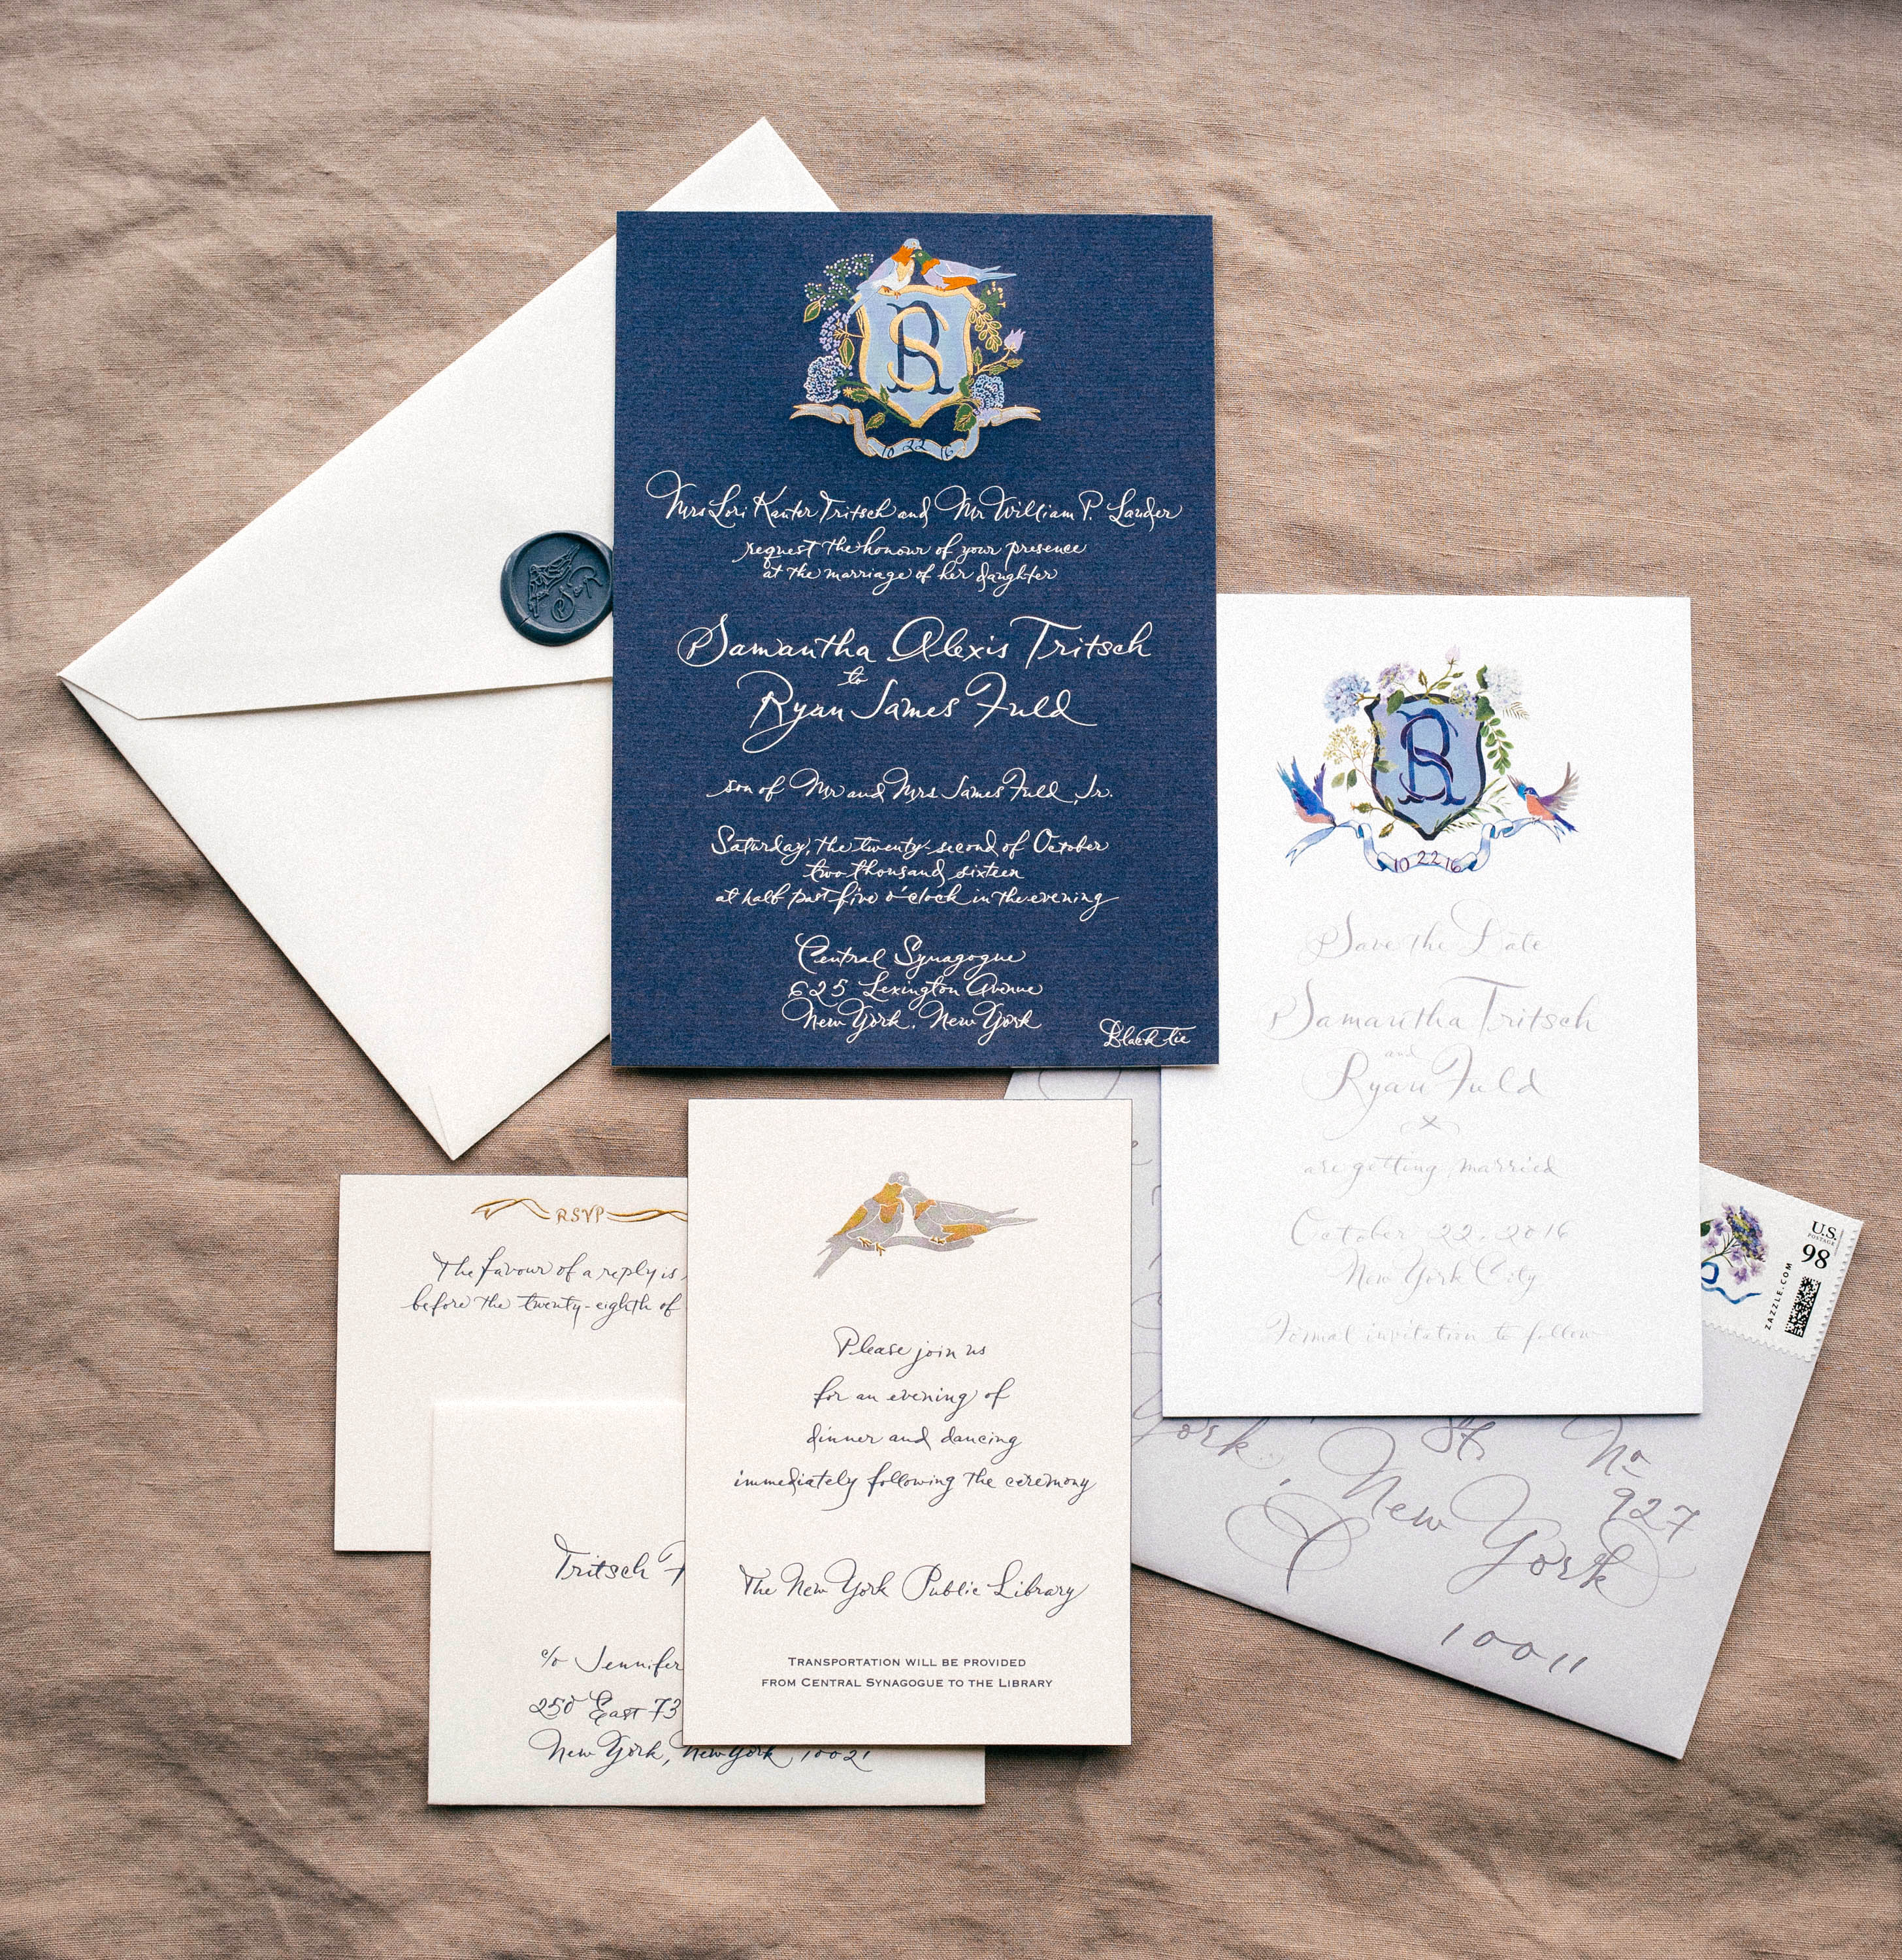 classic invitation love bird illustrations and dark blue elements